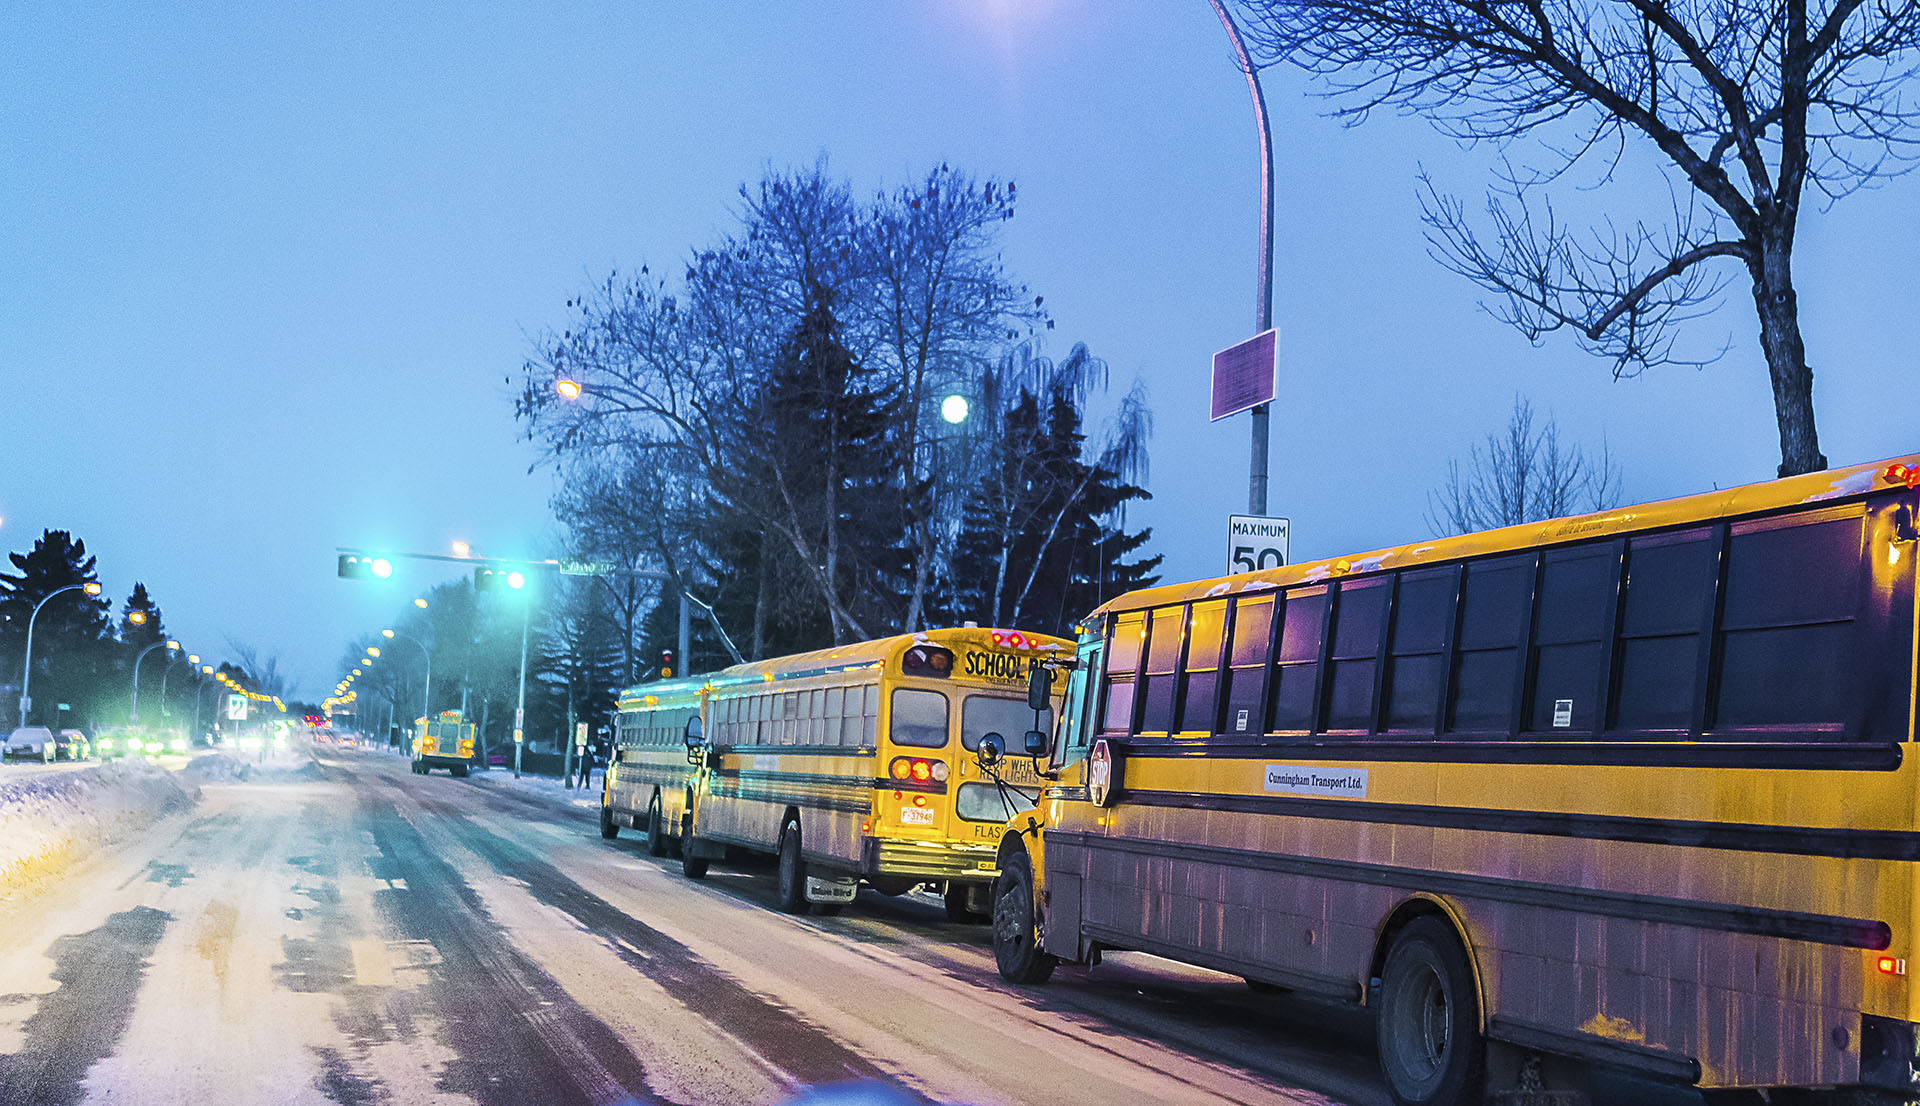 School-Bus-Yellow.jpg